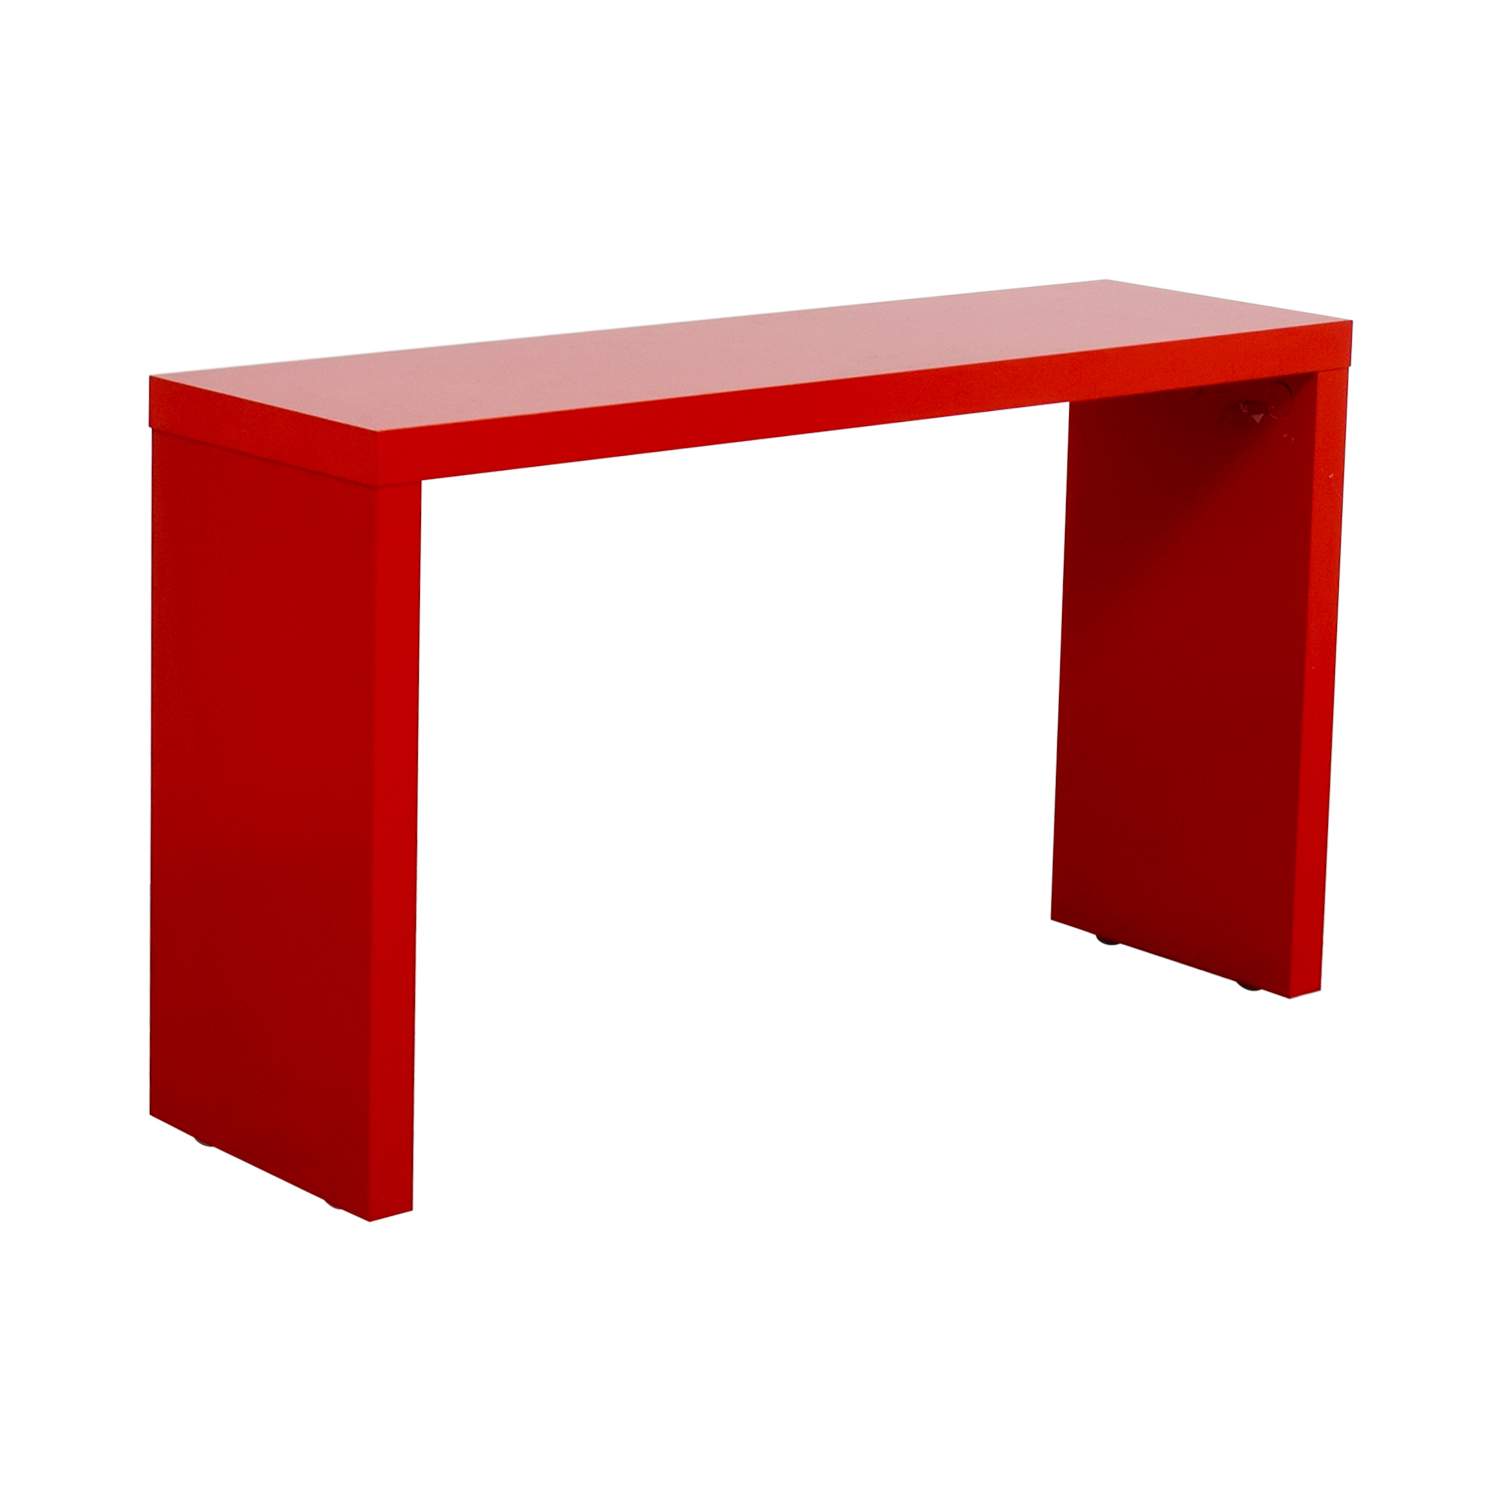 Furniture Masters Furniture Masters Red Credenza nyc